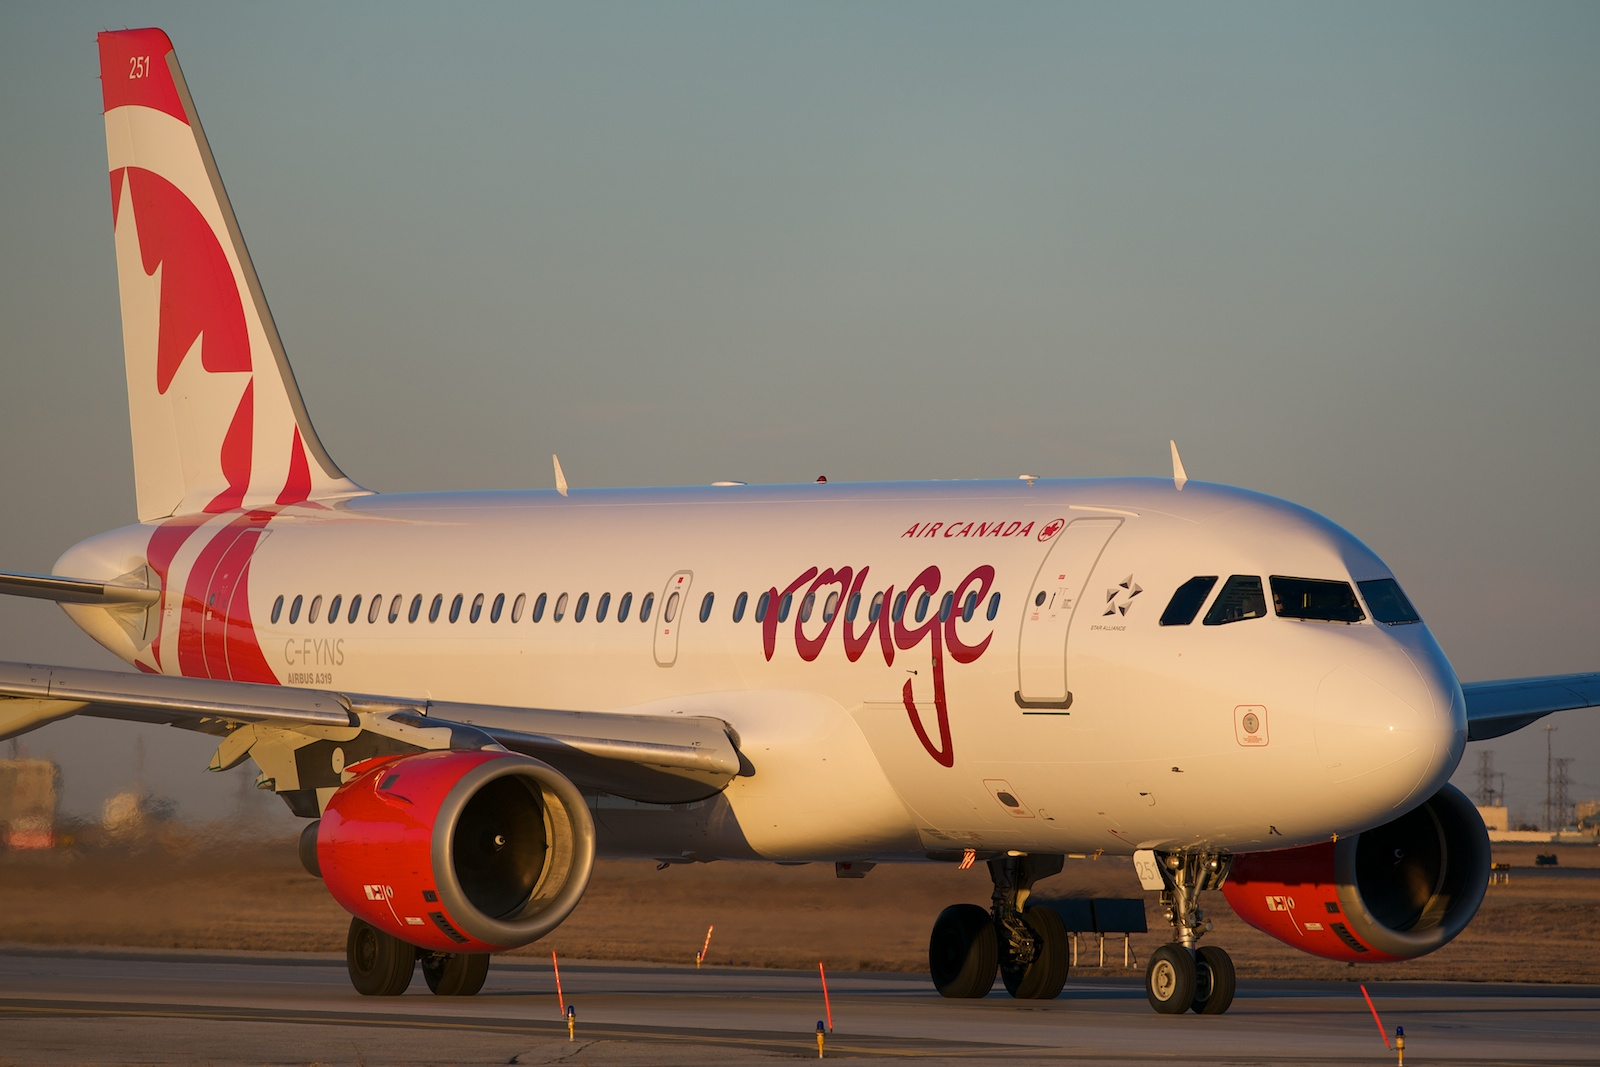 Air Canada rouge A319 C-FYNS par BriYYZ sous (CC BY-SA 2.0) https://www.flickr.com/photos/bribri/13527239384/ https://creativecommons.org/licenses/by-sa/2.0/